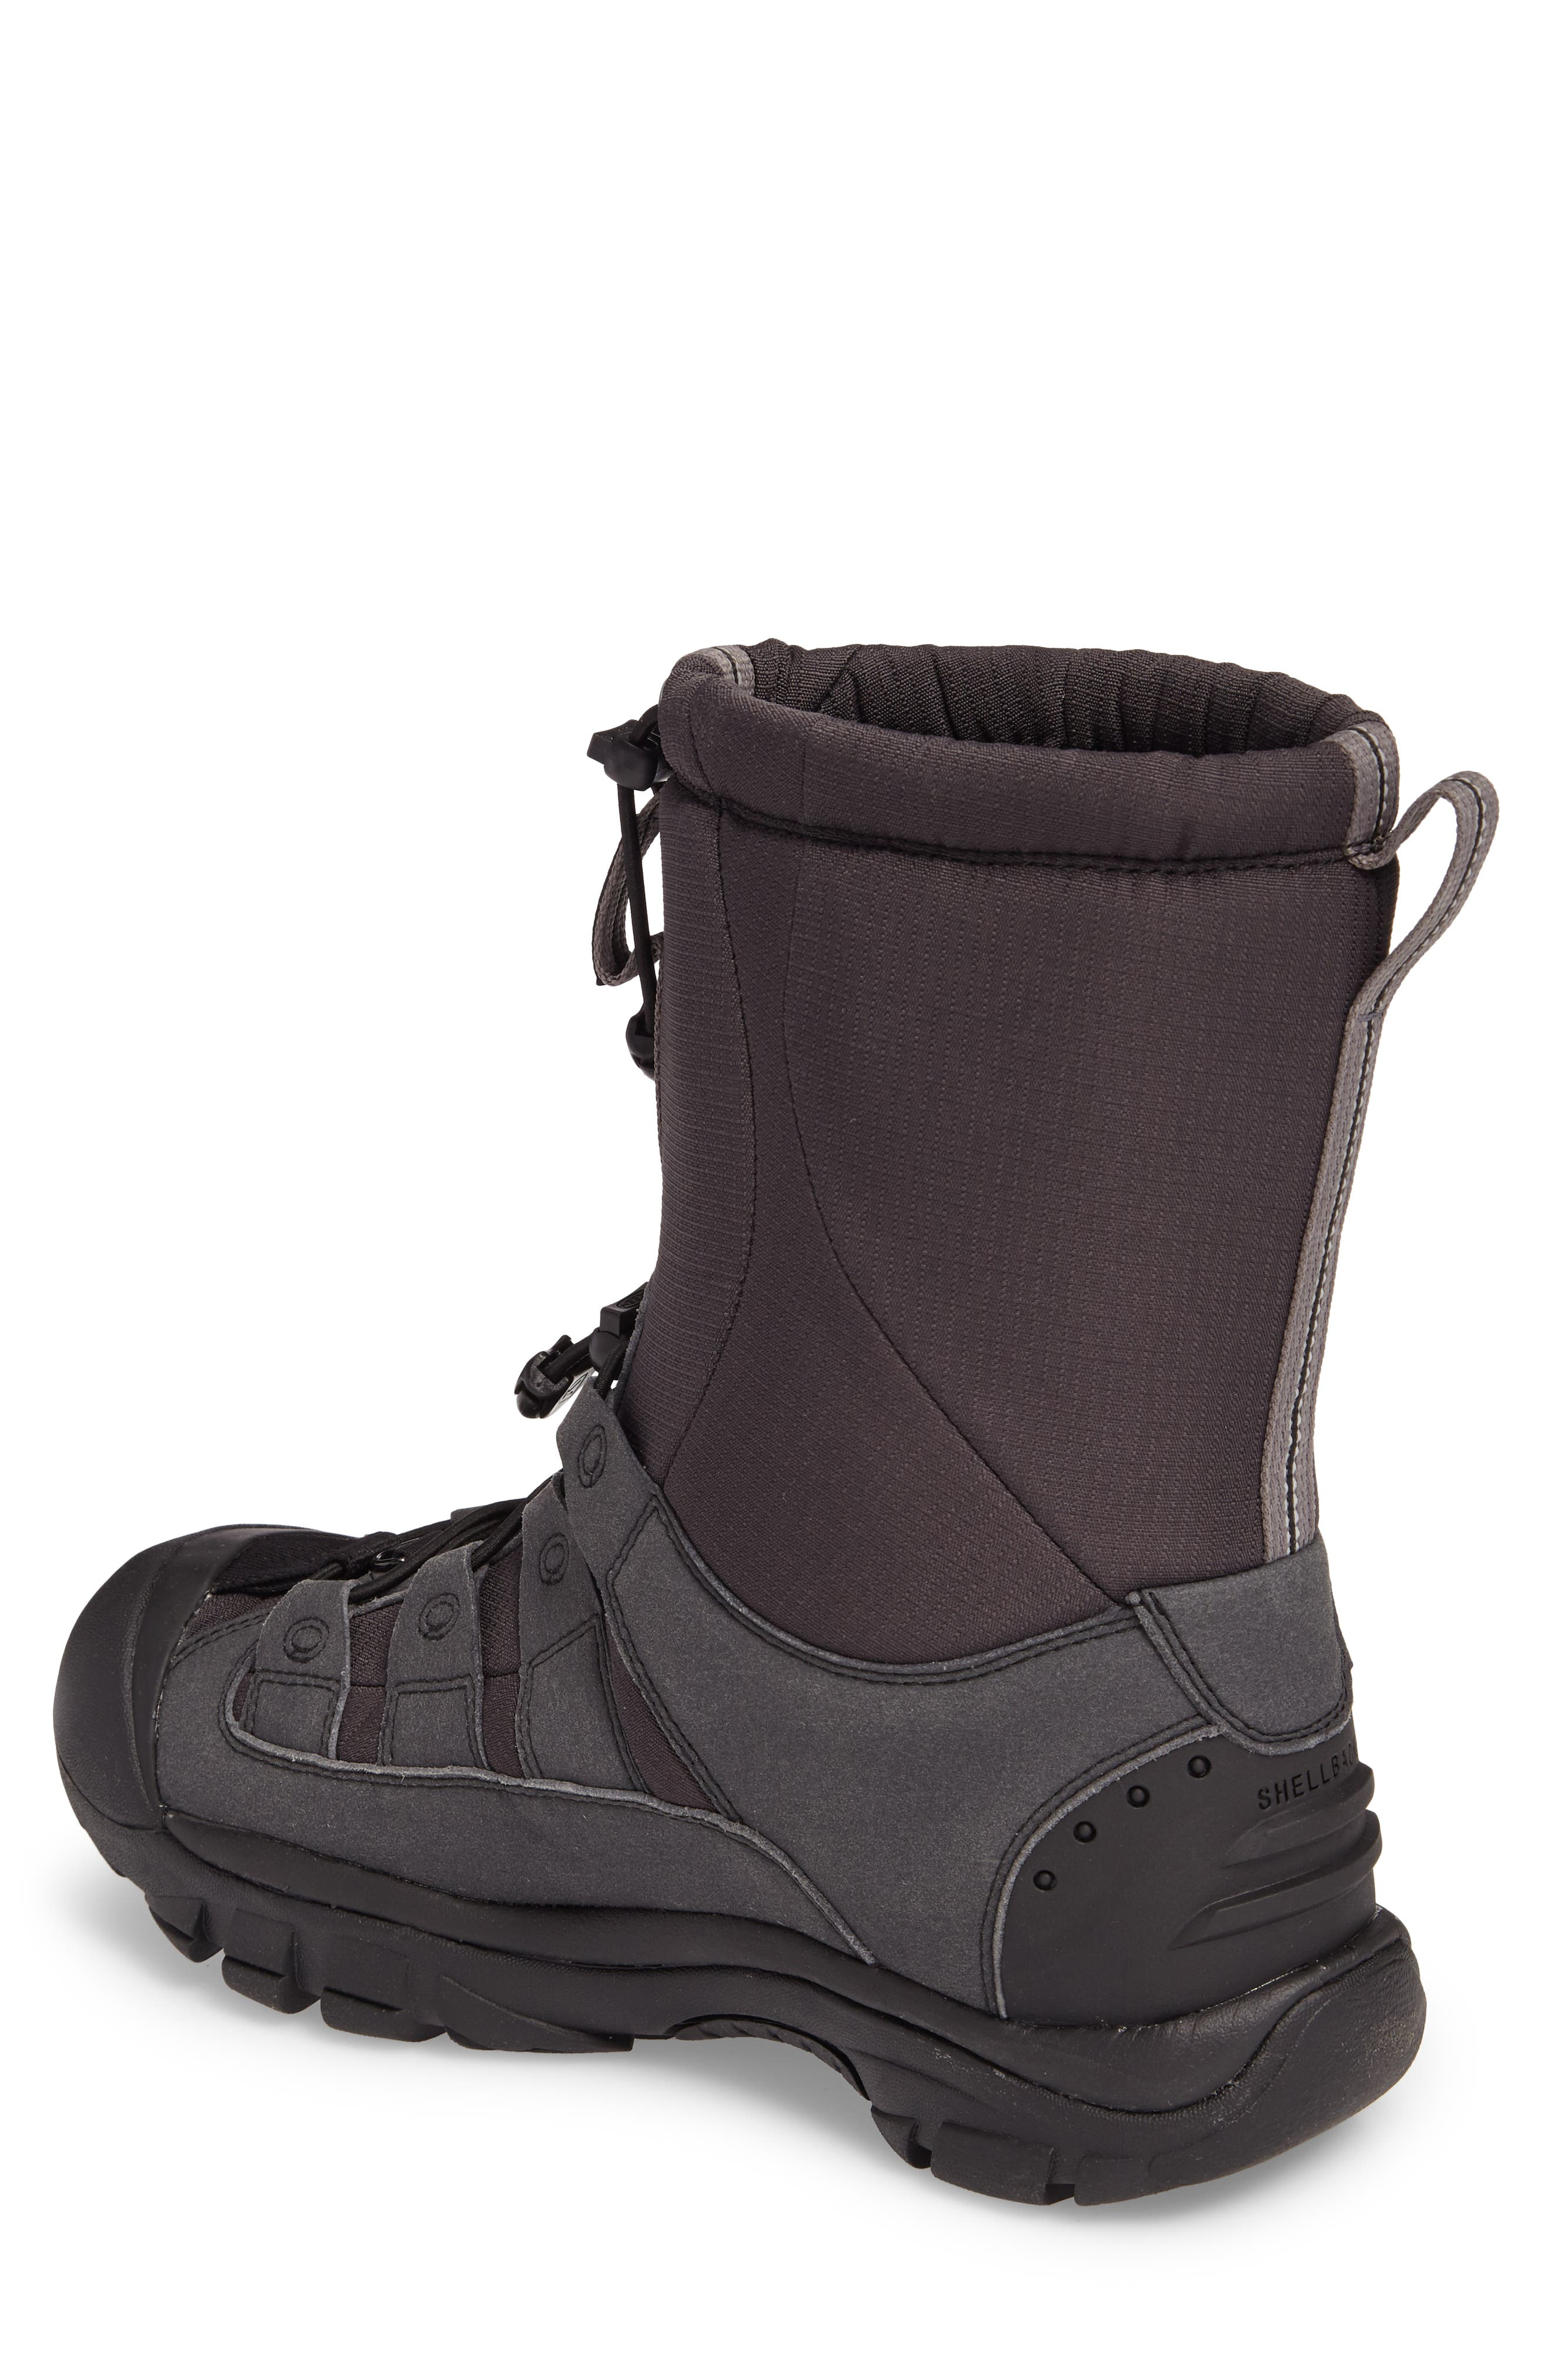 Winterport II Waterproof Insulated Snow Boot,                             Alternate thumbnail 2, color,                             Black/ Frost Gray